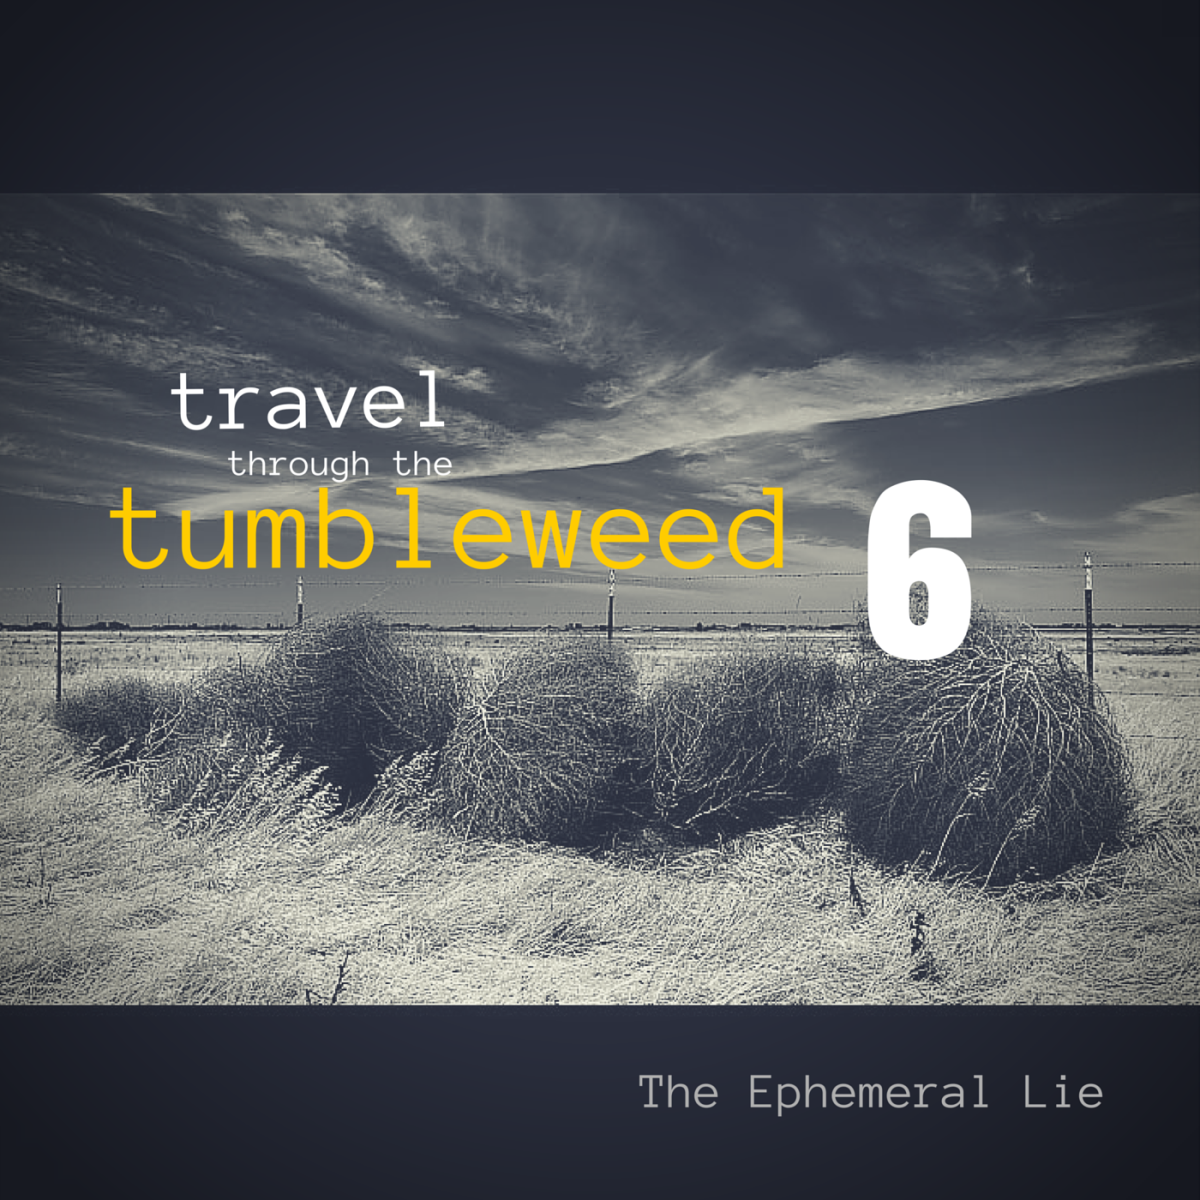 image of tumbleweed for week 6 in the 10 week series exploring old blog posts. this week's entry is a post inspired by a prompt with 7 words, and is titled 'the ephemeral lie'.